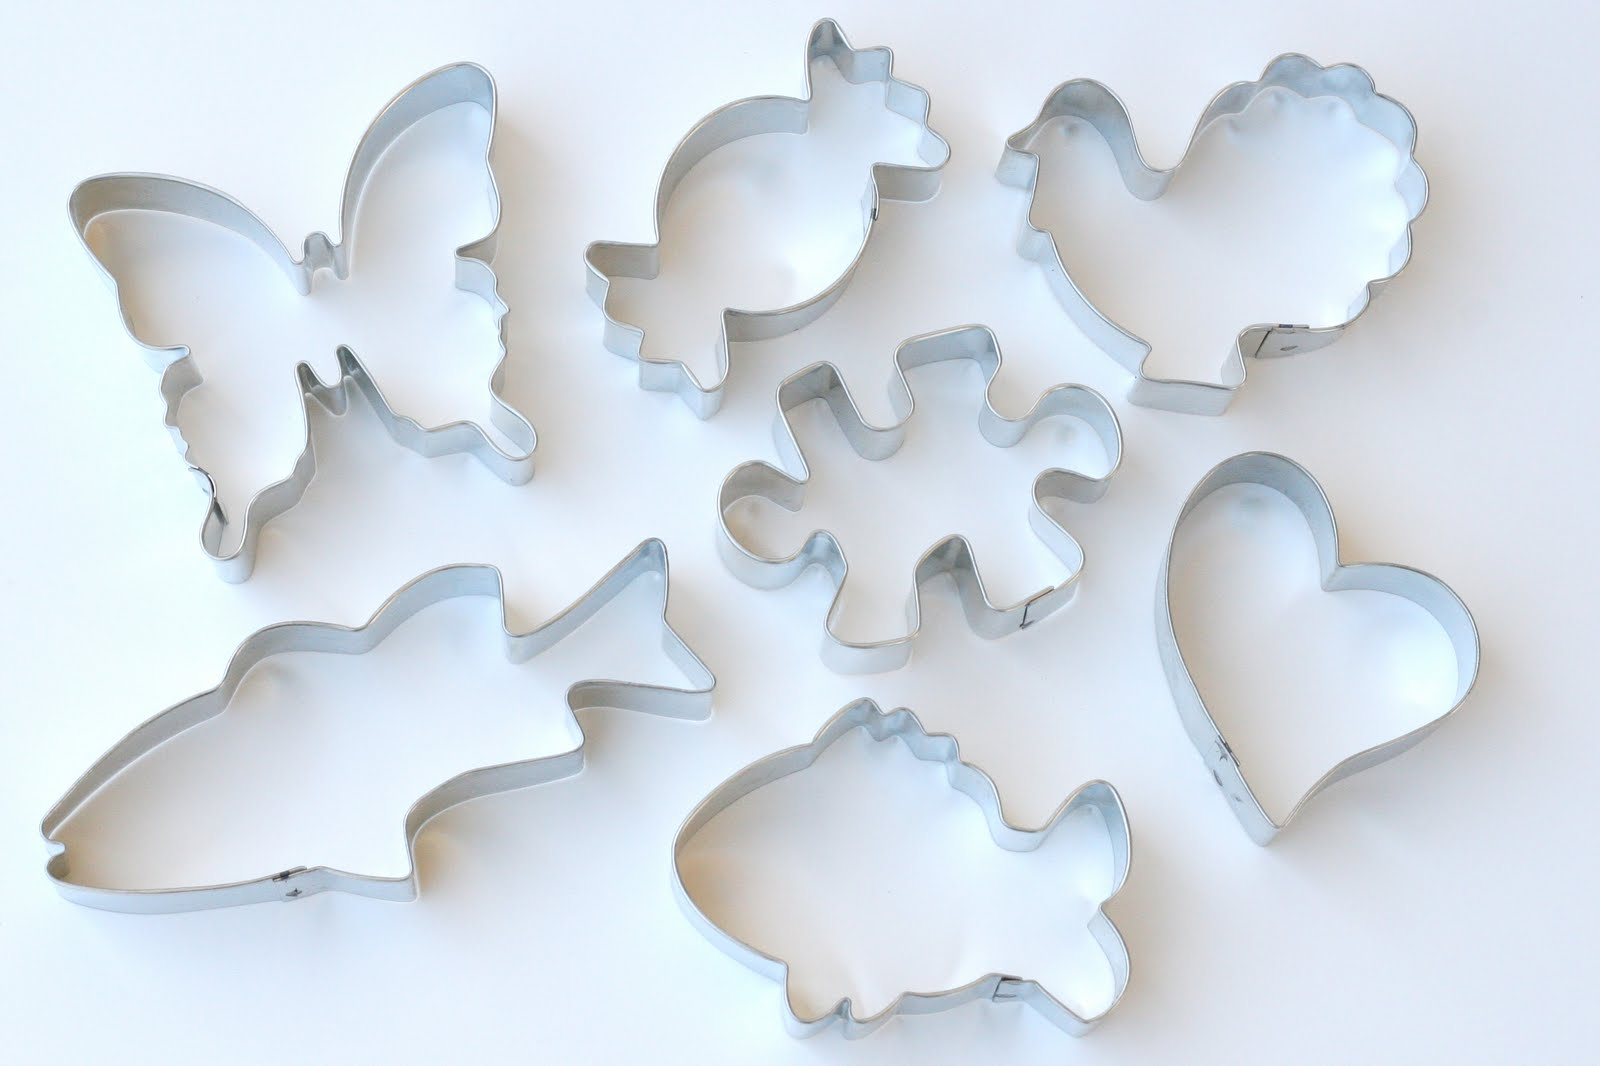 Shop for Cookie Cutters in Bakeware. Buy products such as Wilton 6-Inch Cookie Sticks, White, Count at Walmart and save.